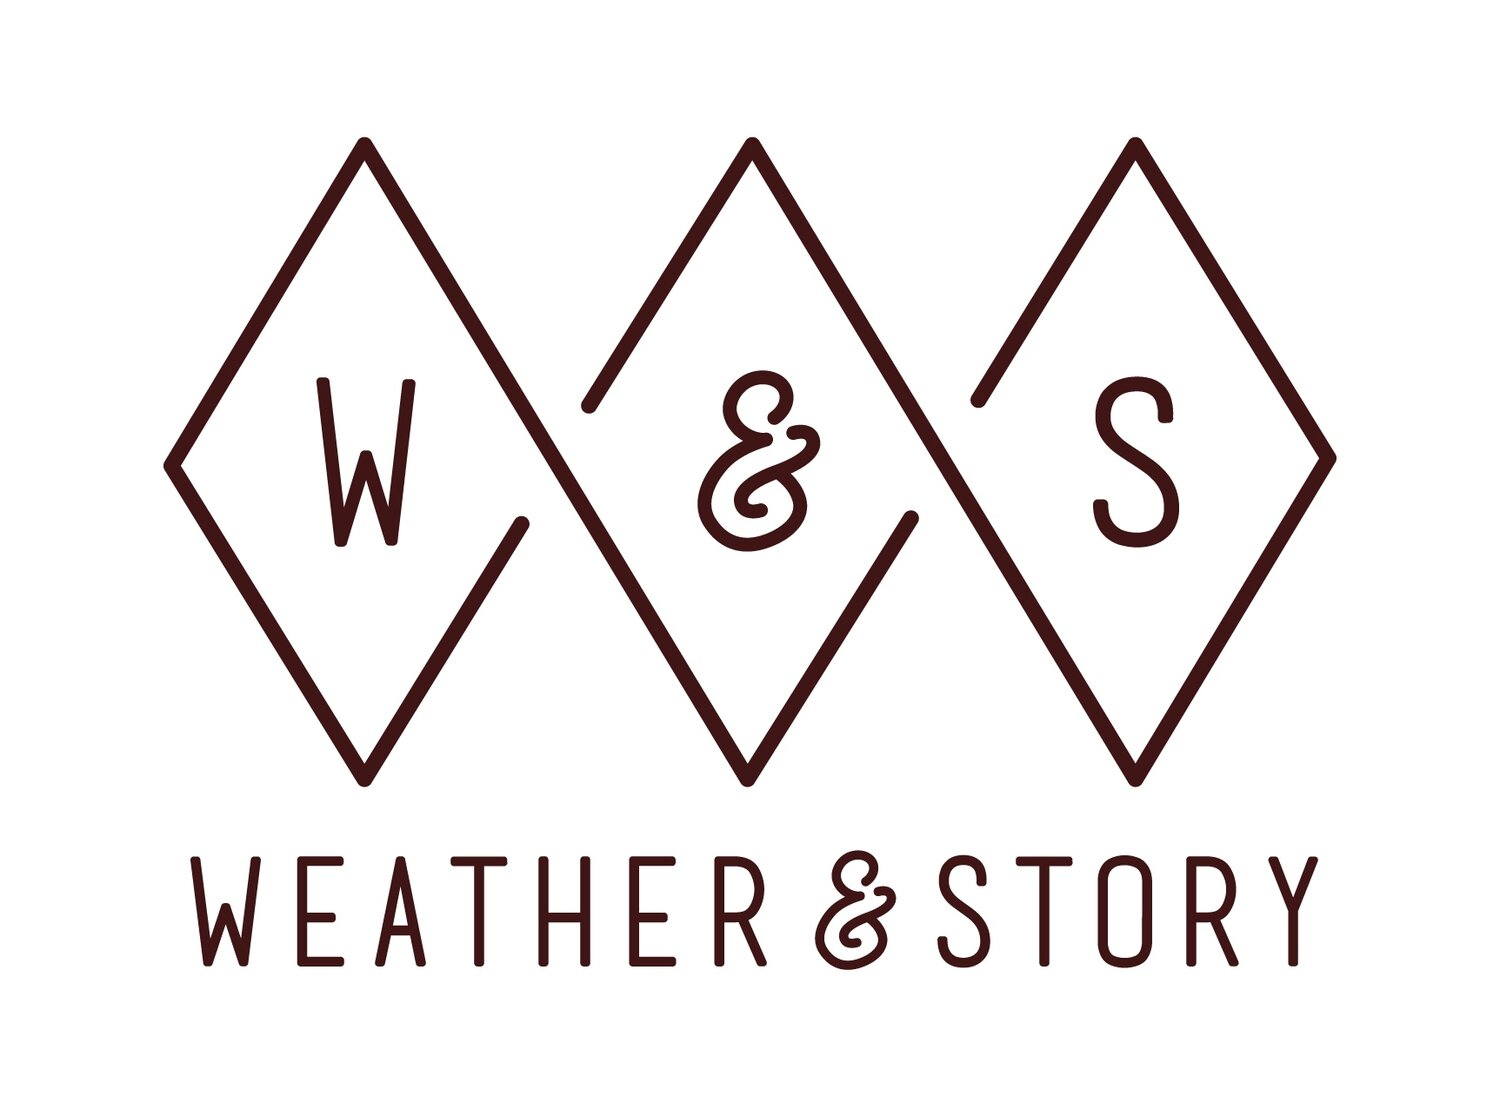 WEATHER & STORY